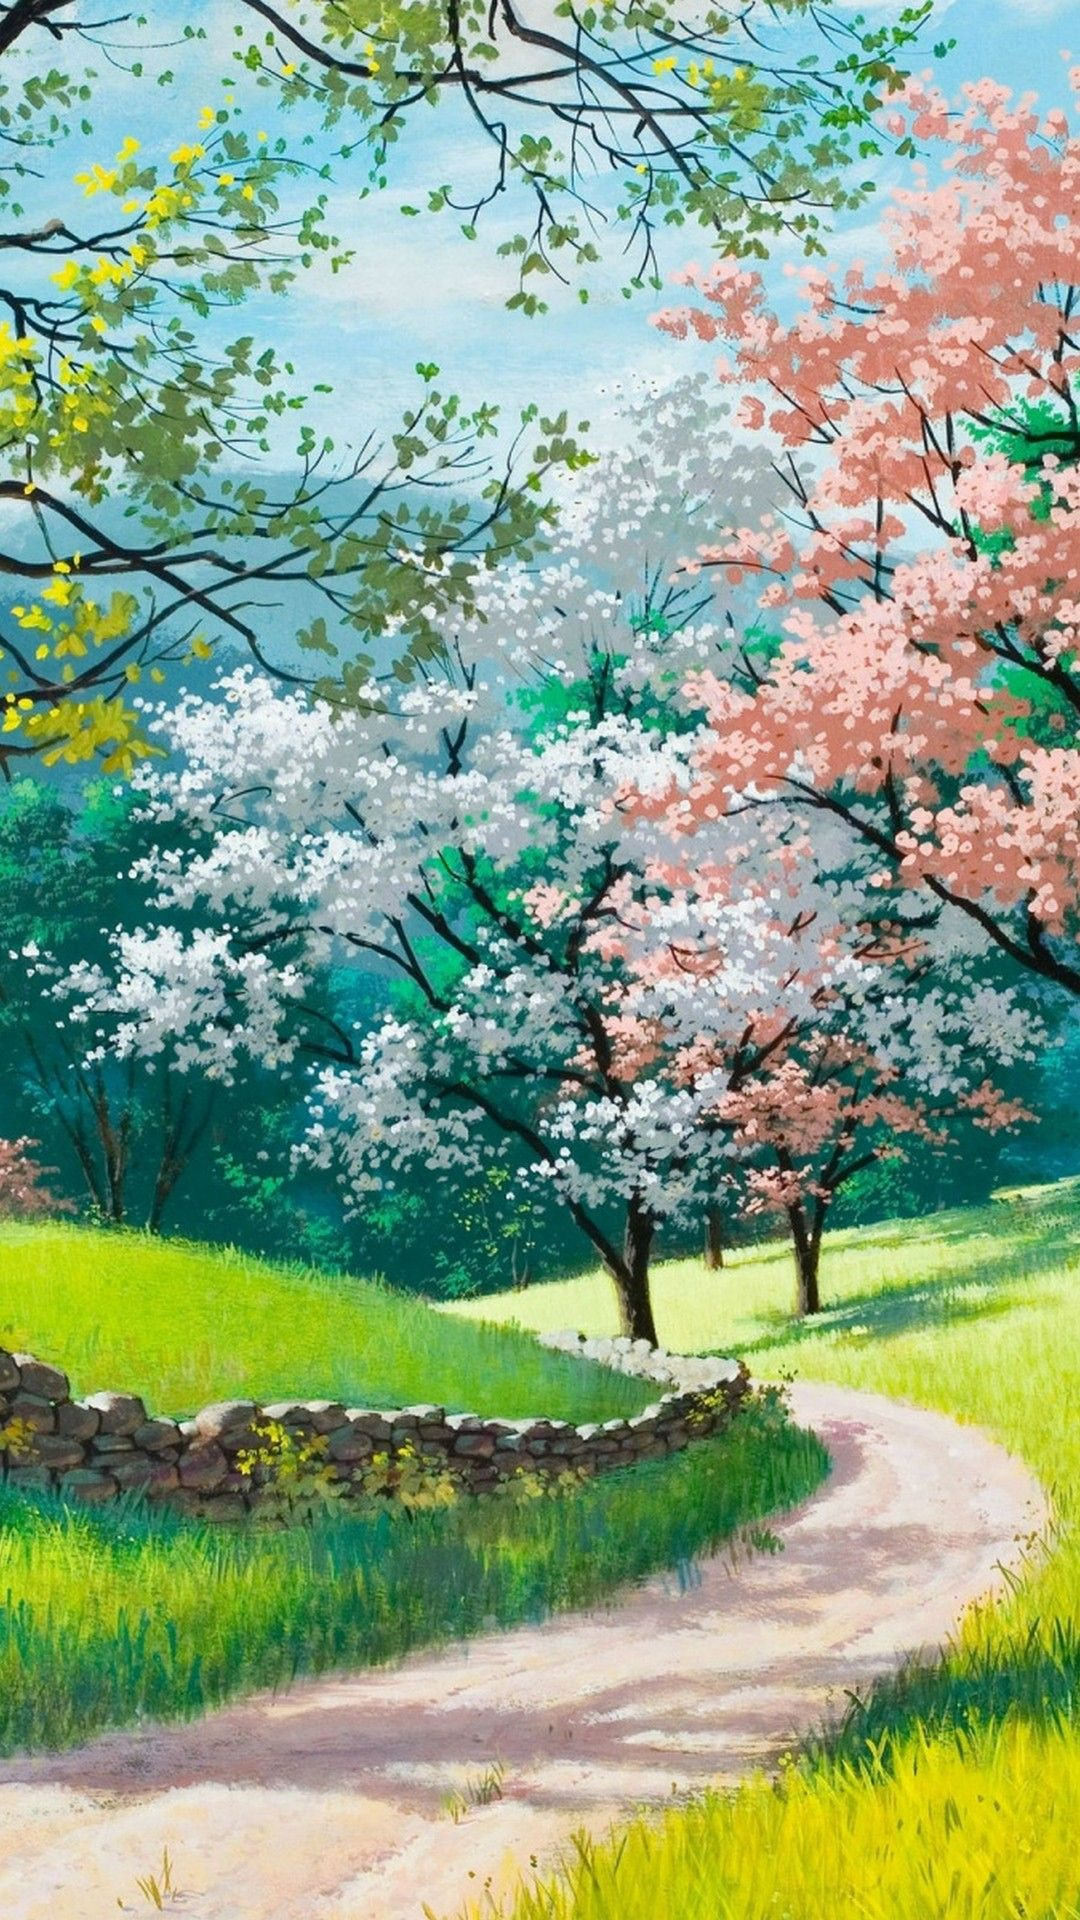 Top 8 Spring Wallpapers 1080p For Your Android Or Iphone Wallpapers Android Iphone Wallpaper Landscape Wallpaper Anime Scenery Landscape Paintings